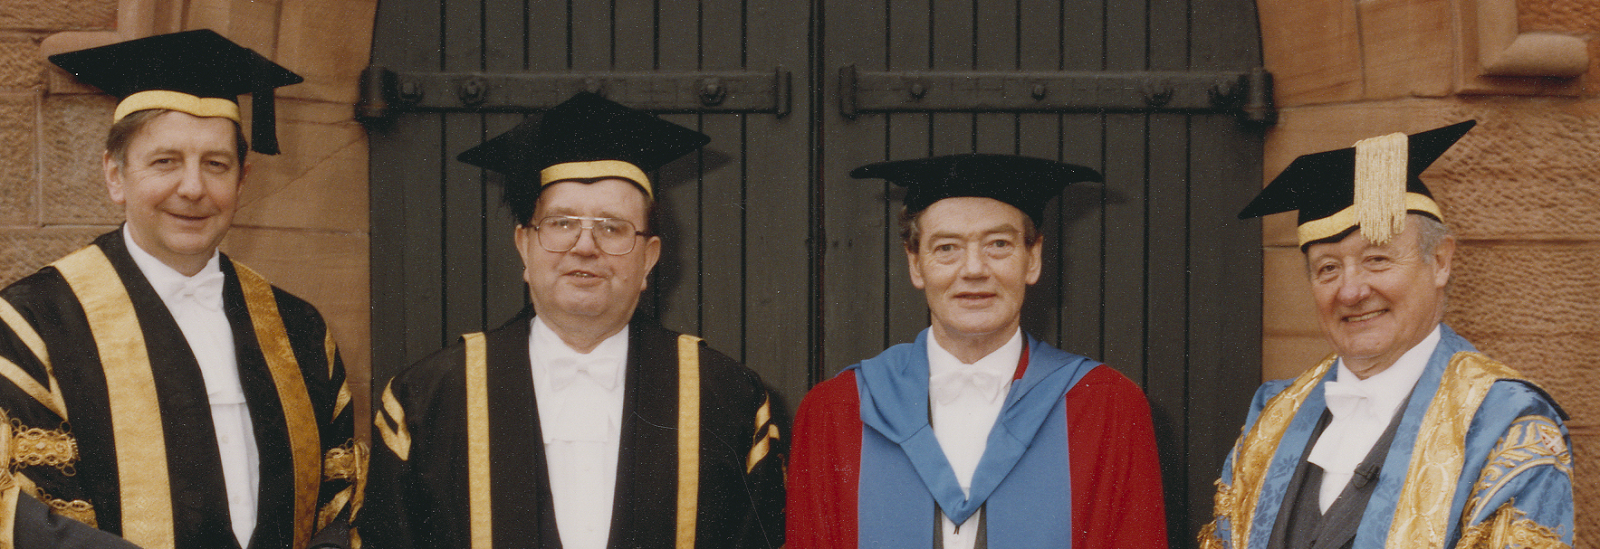 Lord Tombs of Brailes (far right) pictured in 1992 with, left to right:: Professor (later Sir) John Arbuthnott, then Principal of Strathclyde;Strathclyde Professor John Butt; Thomas Johnston OBE, then University Treasurer and recipient of honorary degree.